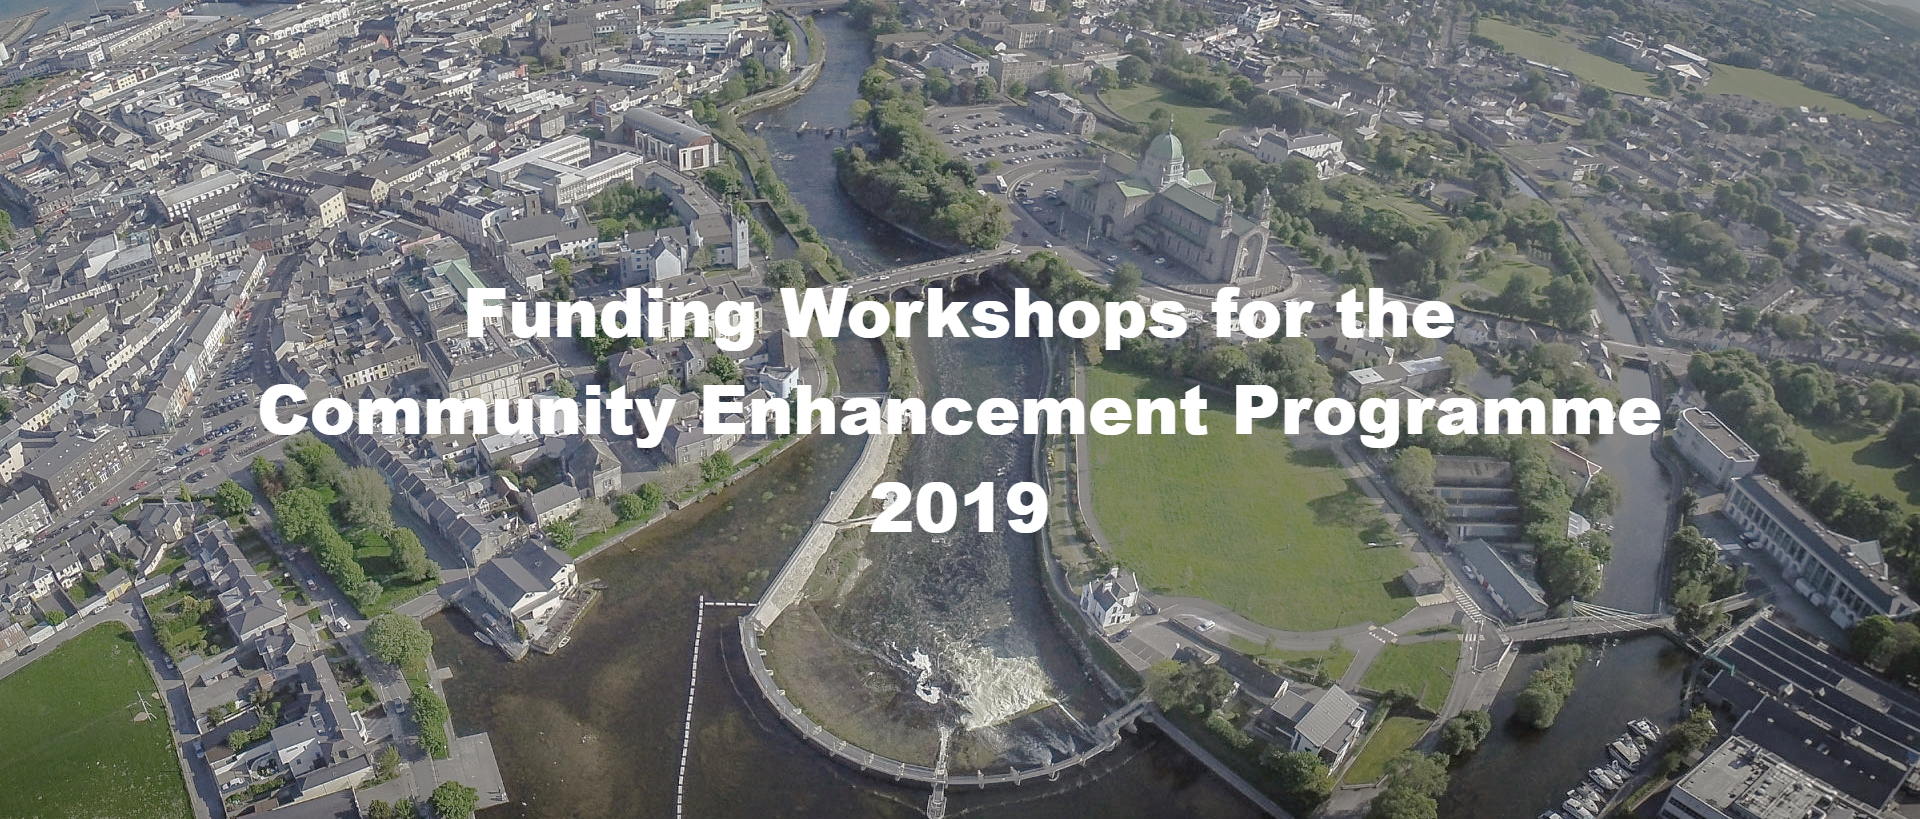 Funding Workshops for the Community Enhancement Programme